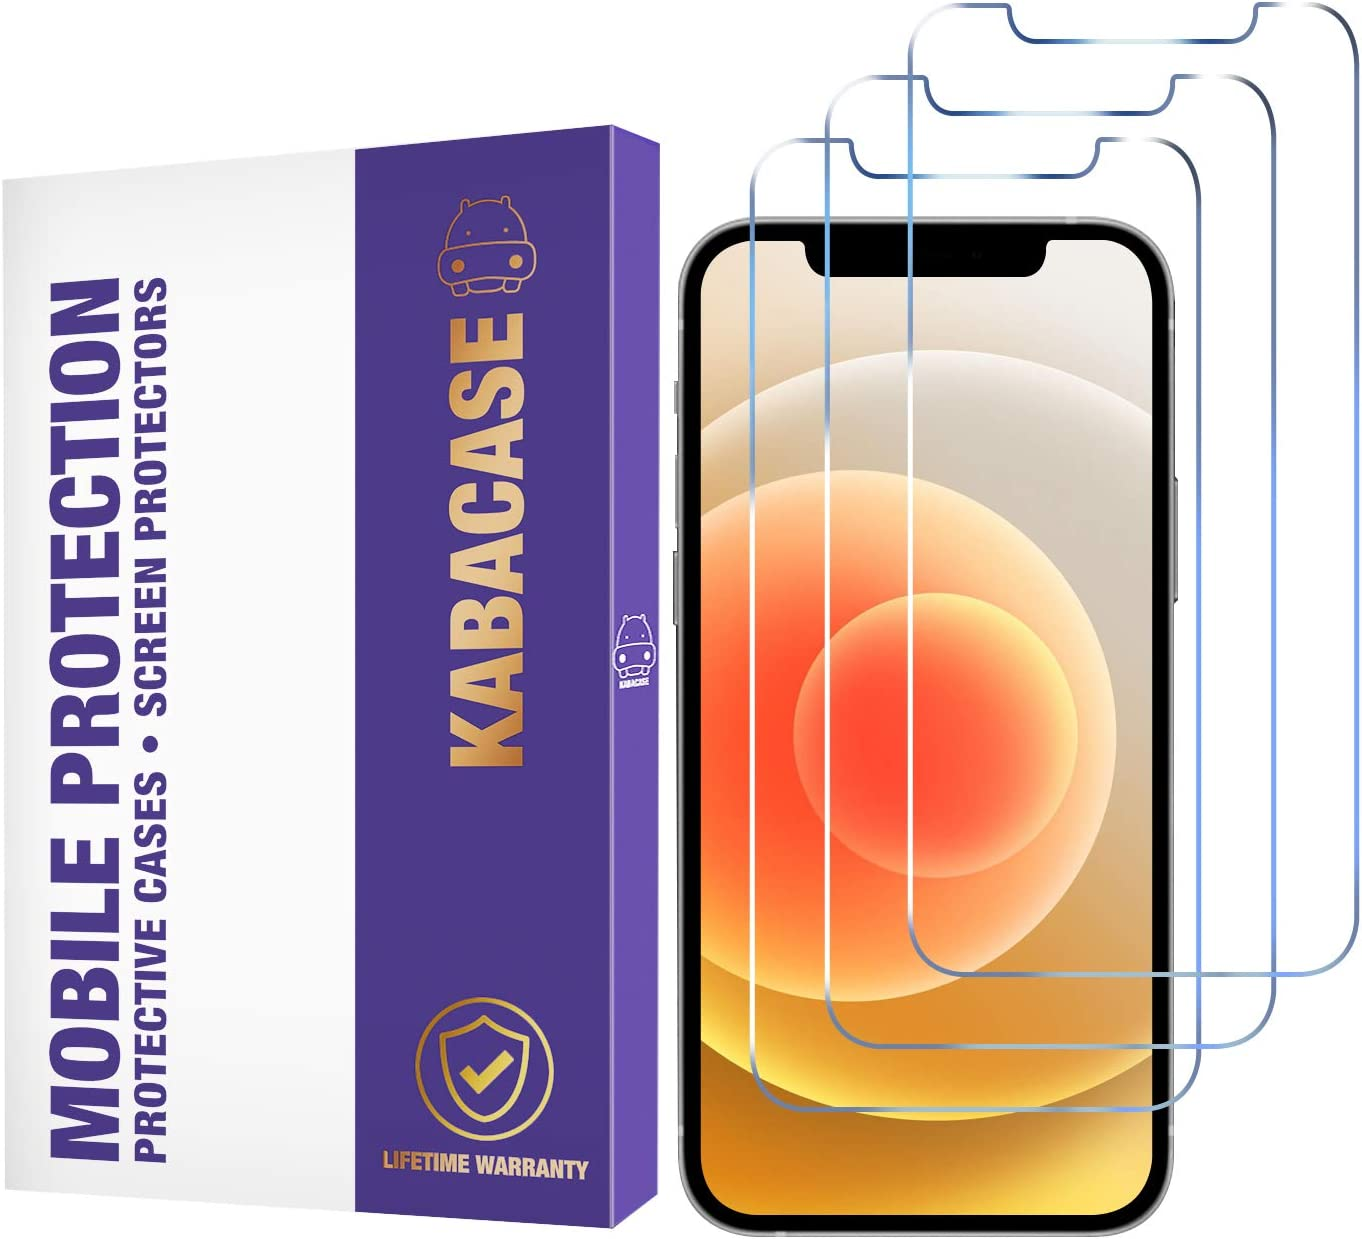 KabaCase Tempered Glass Screen Protector for iPhone 12, iPhone 12 Pro (3 Pack) -- Toughened Glass Protective Cover for 6.1-inch Apple iPhones -- [Ultra Clear] [Case Friendly] [Easy Install] [No Bubbles] [Anti Scratch] [Screen Saver] [High Definition]